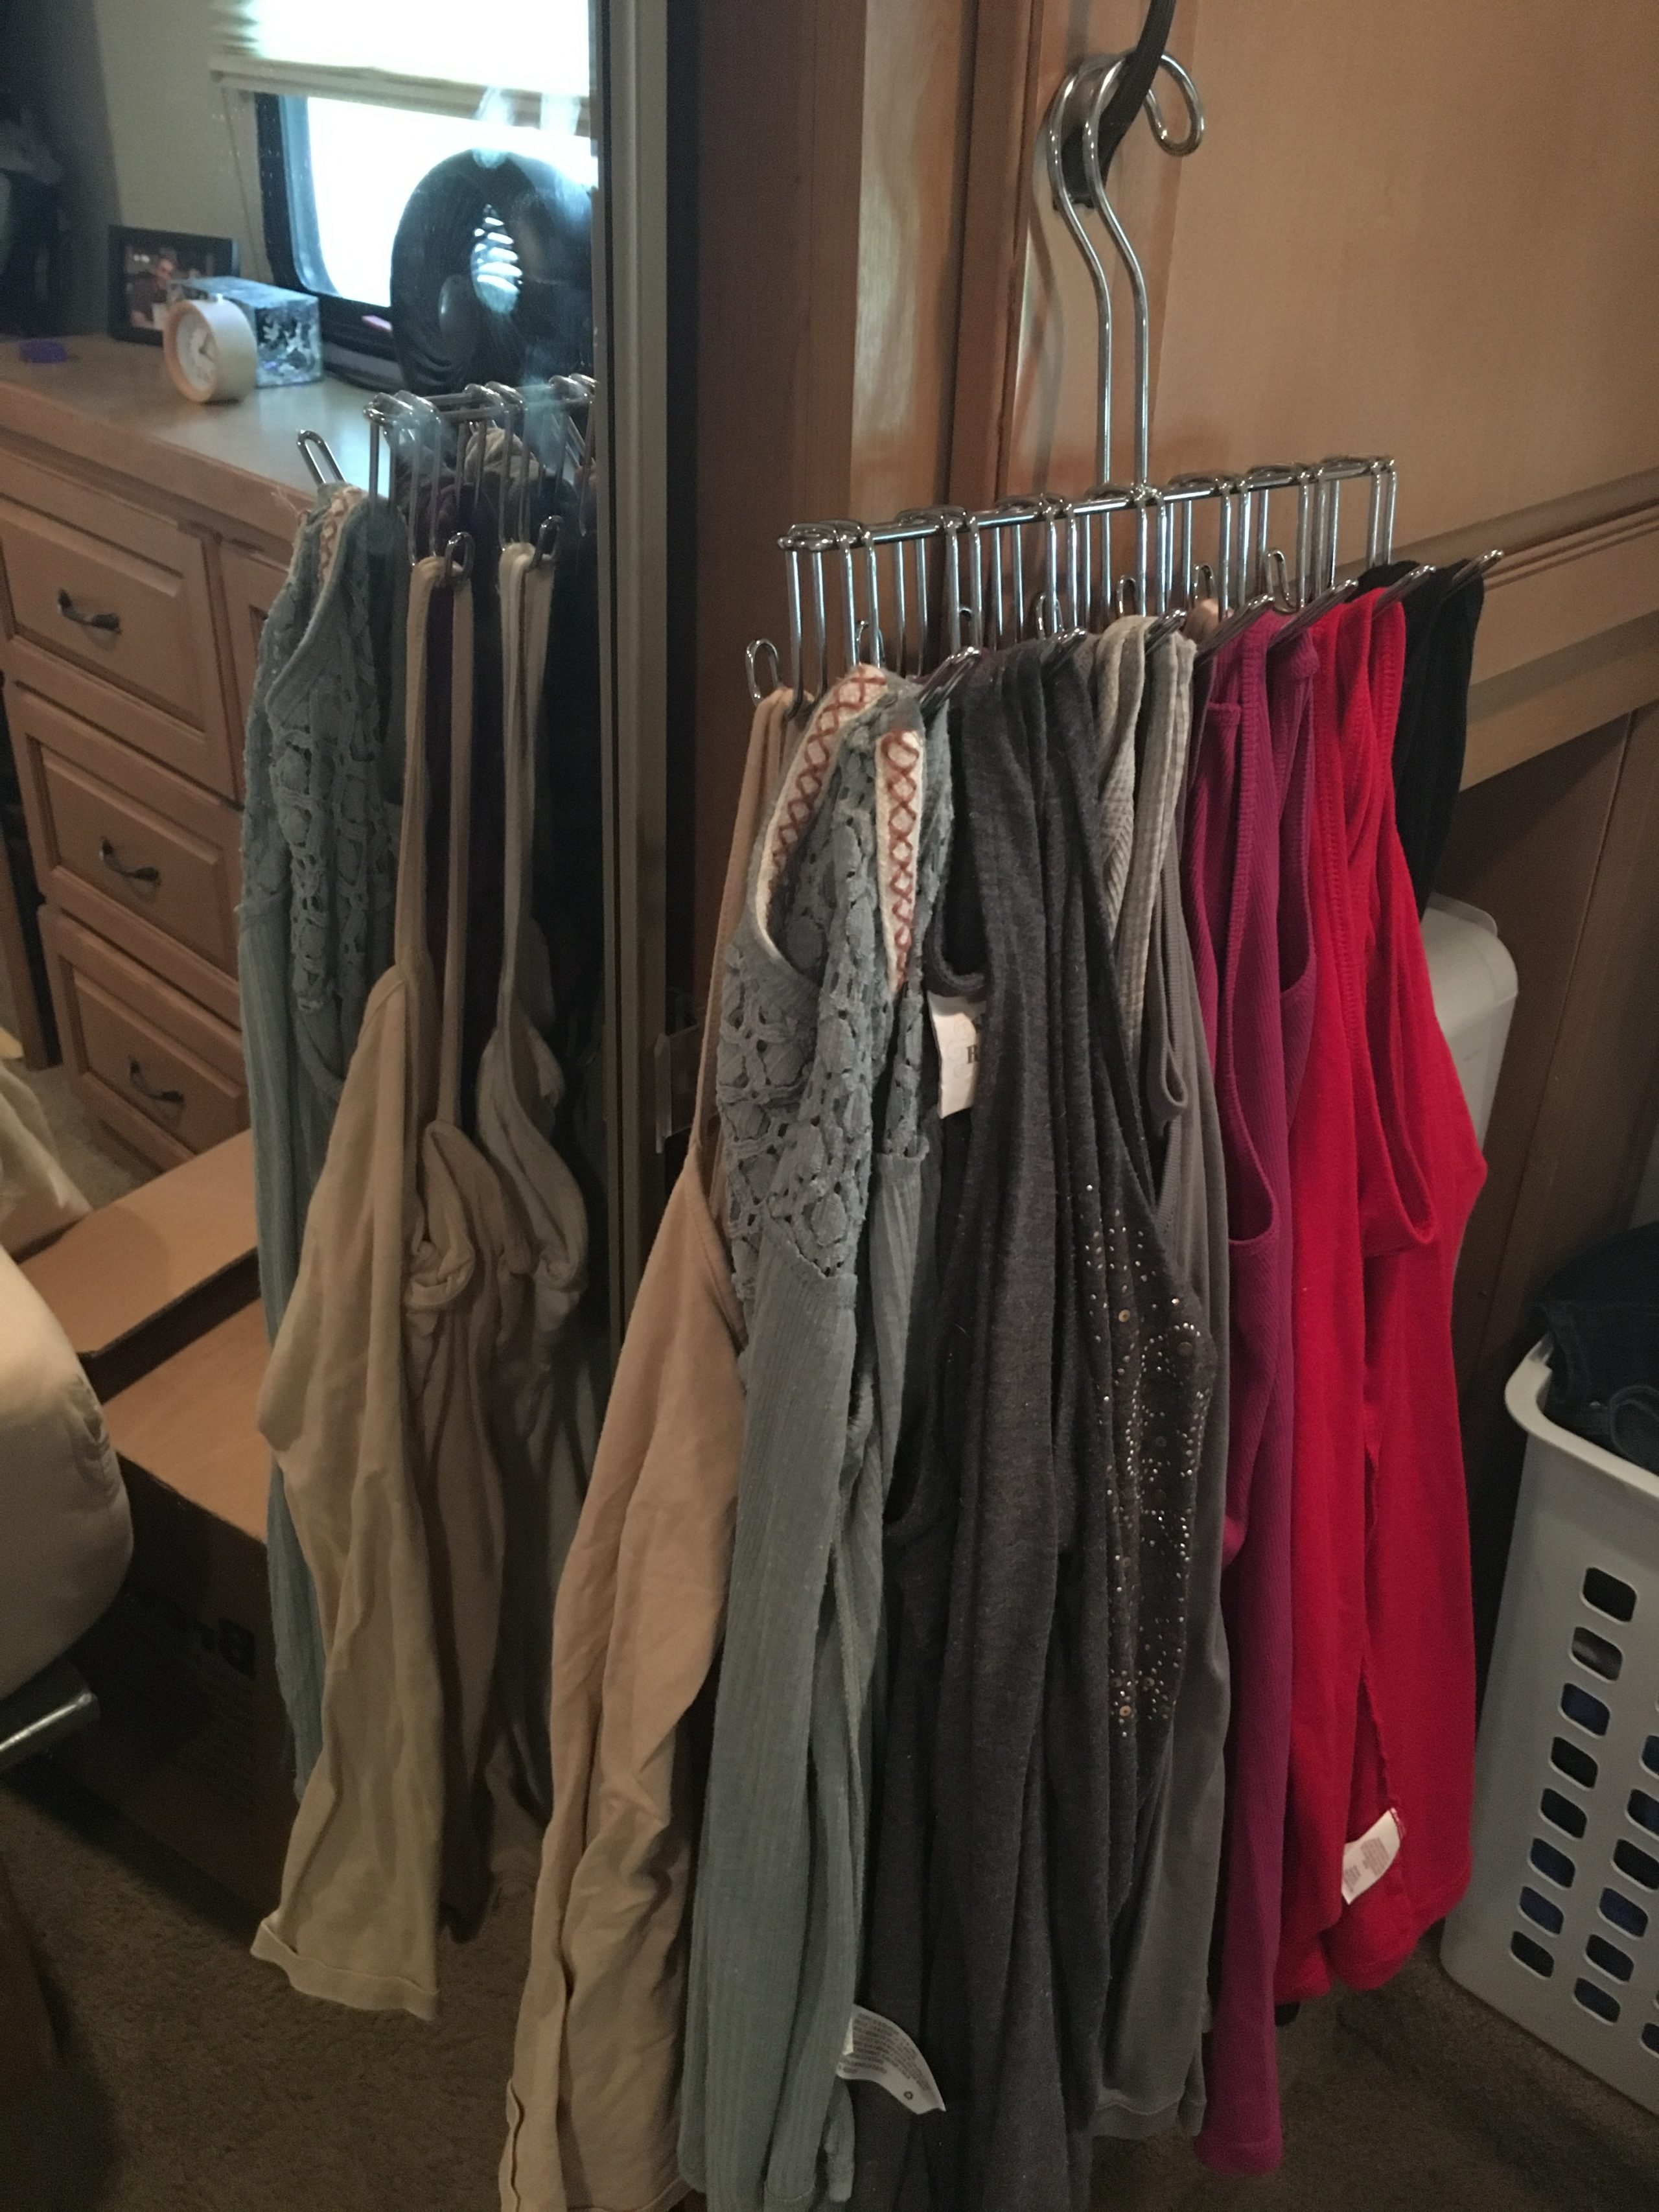 RV closet storage and organization idea   RVinspiration.com   ideas for campers, travel trailers, and motorhomes